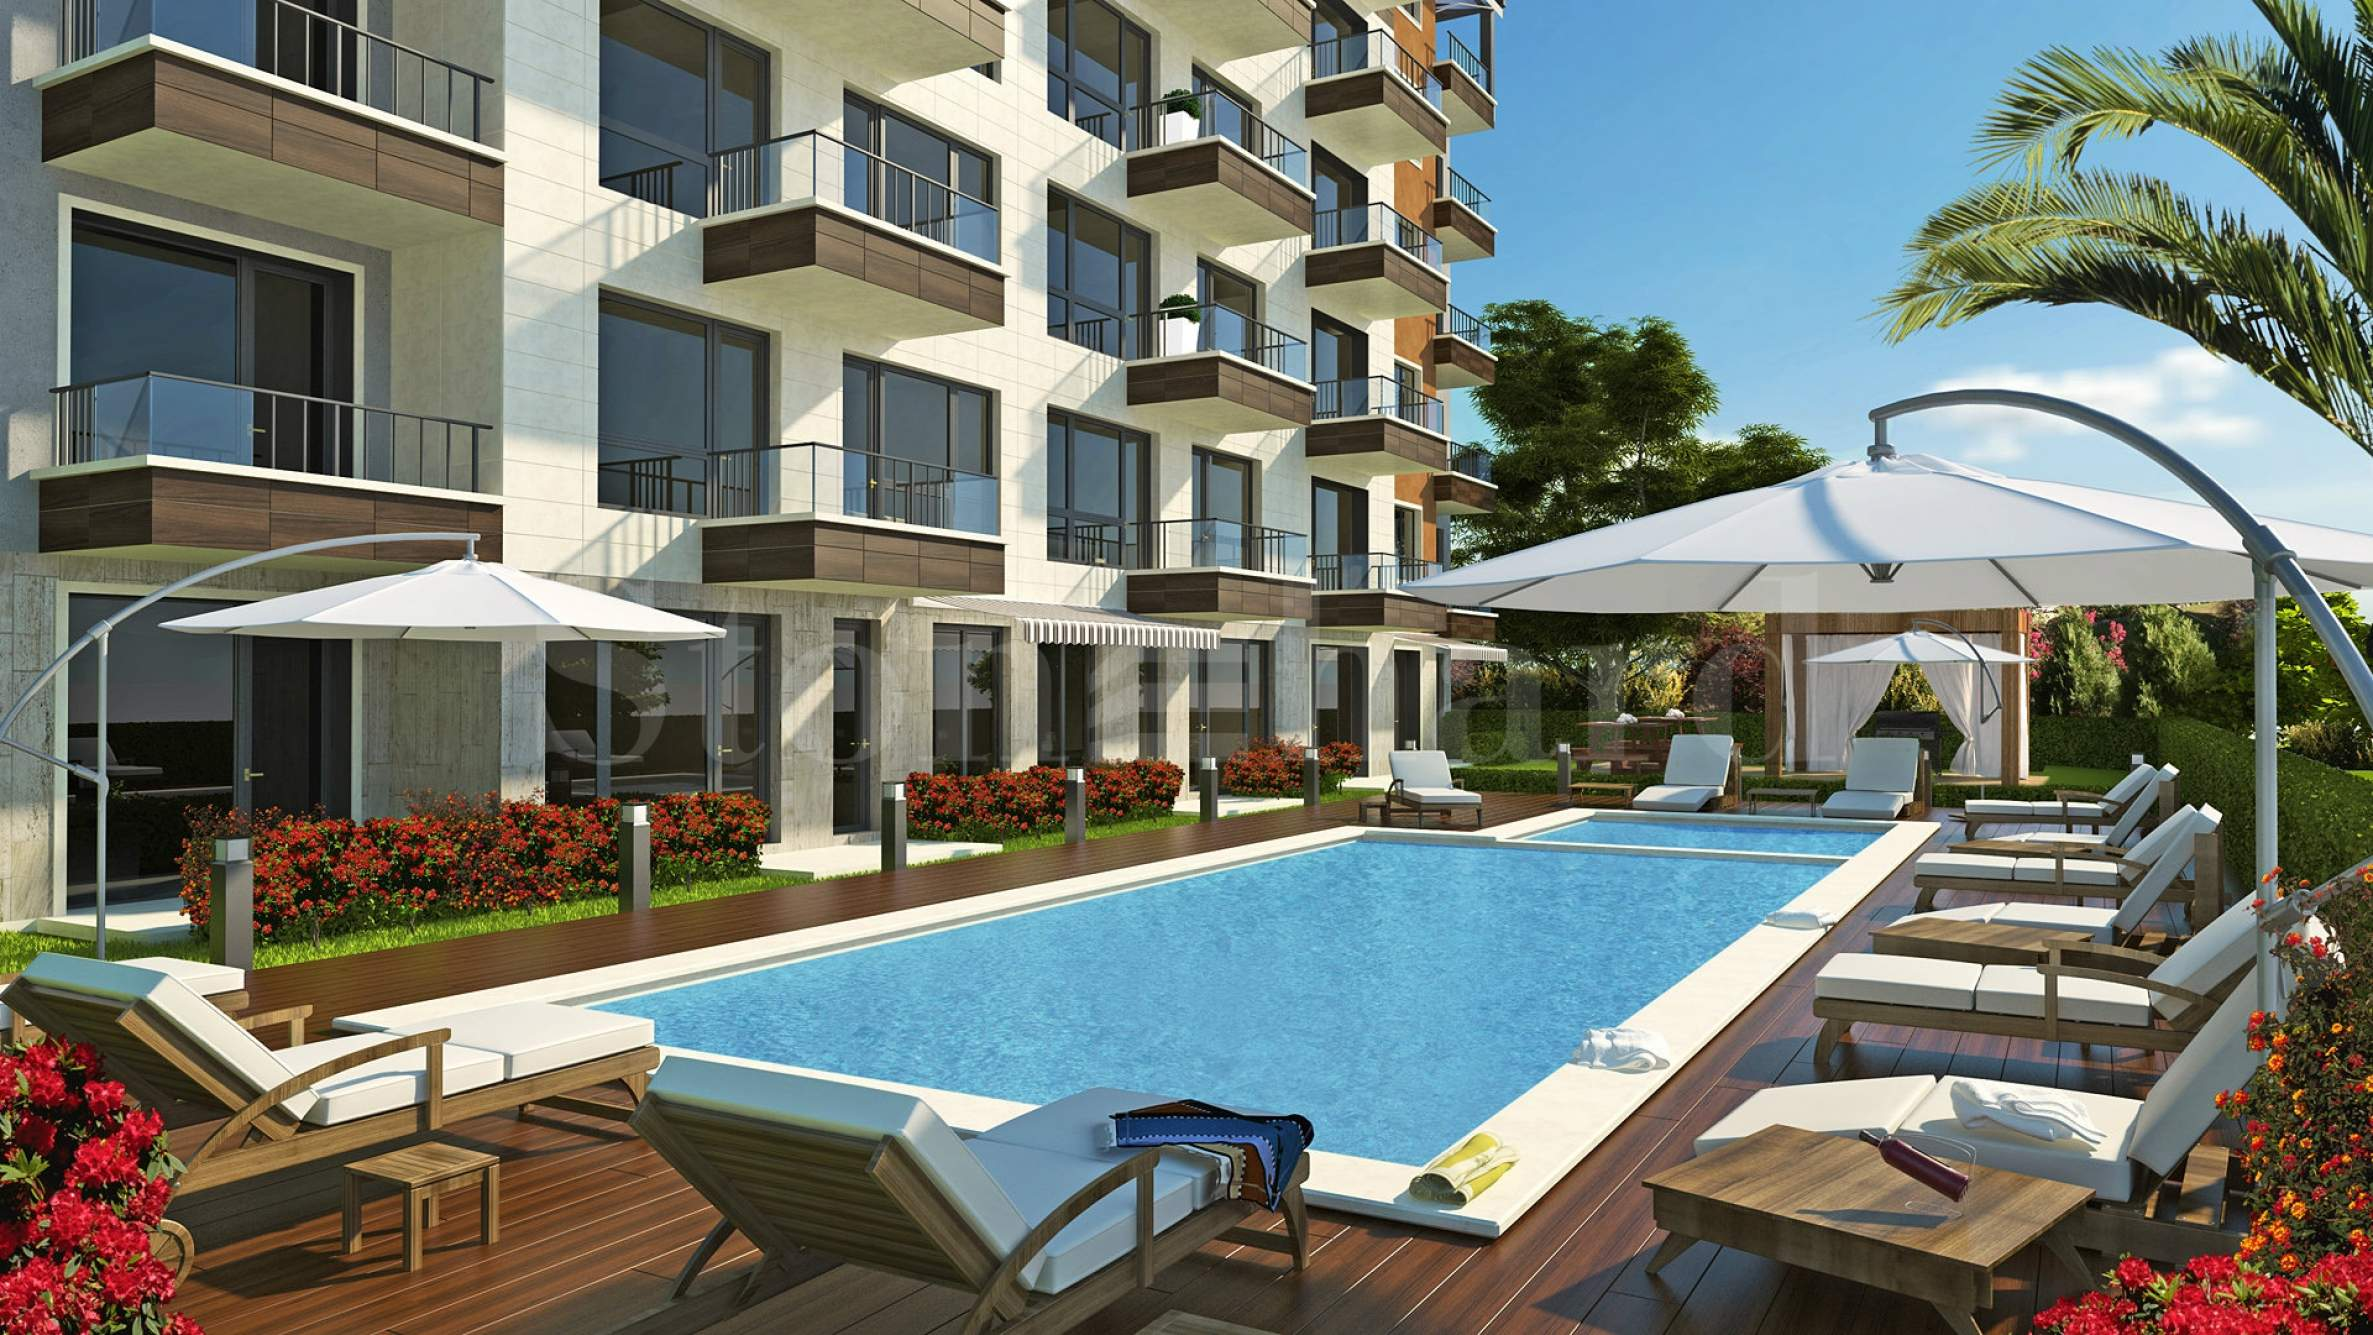 Elegant apartments in a luxury complex near beach2 - Stonehard